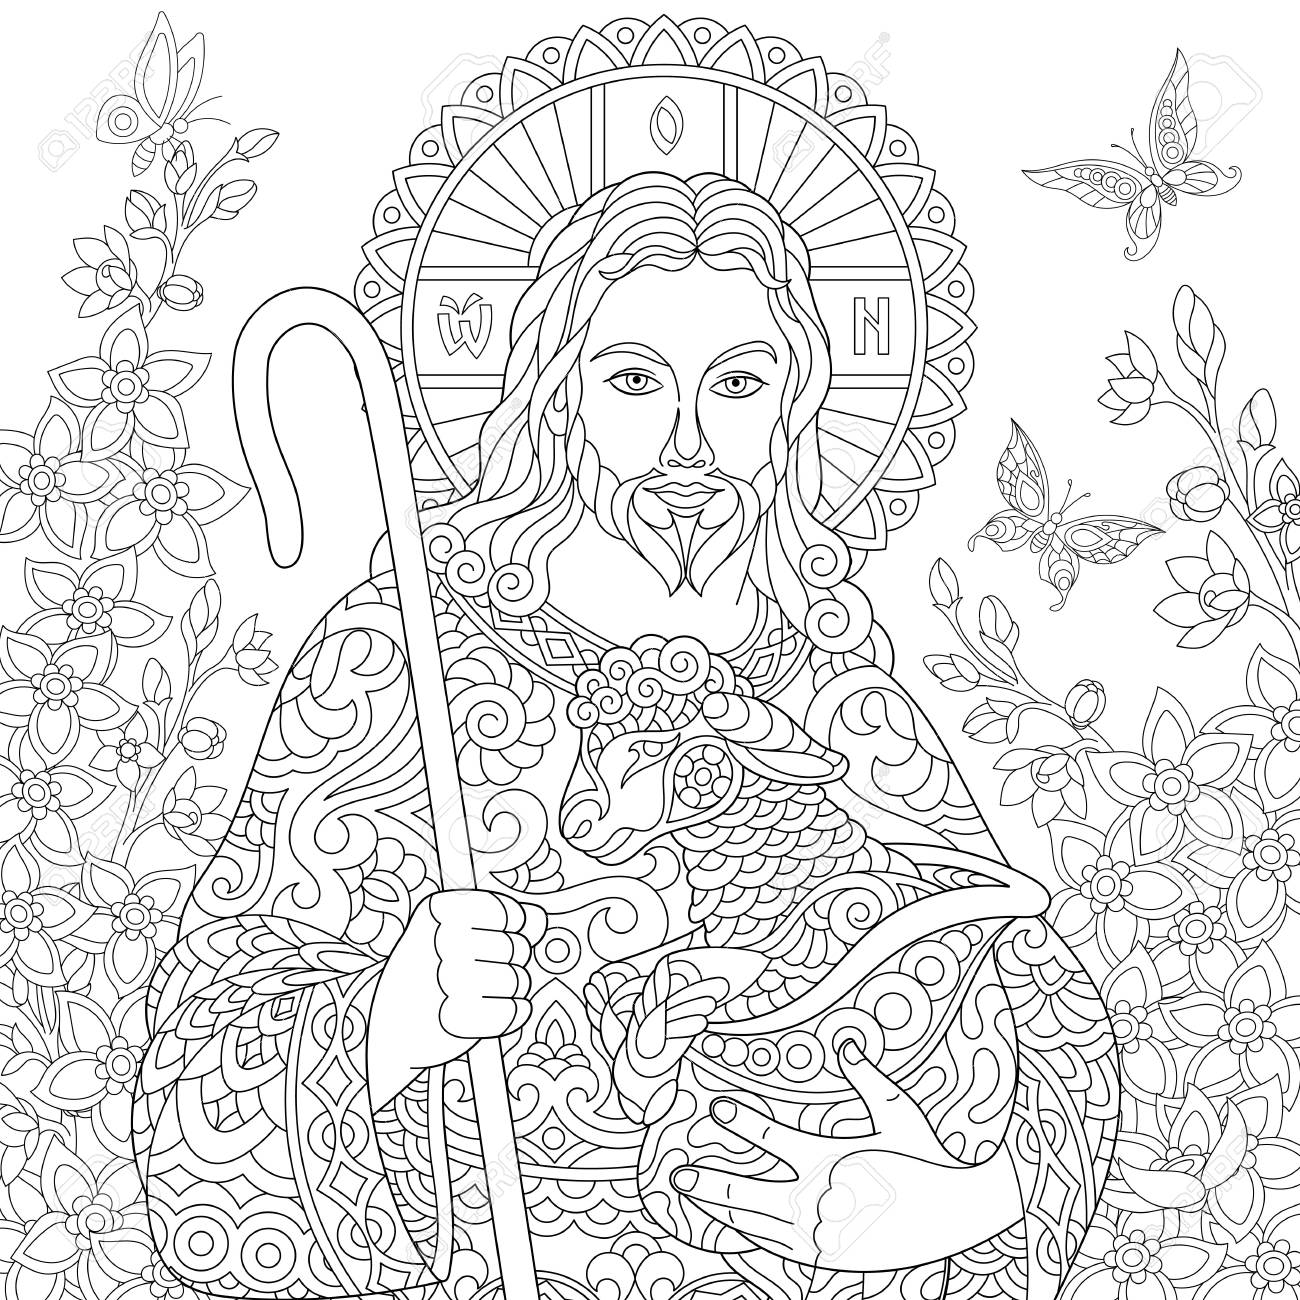 Jesus Resurrection Coloring Pages - Coloring Home | 1300x1300